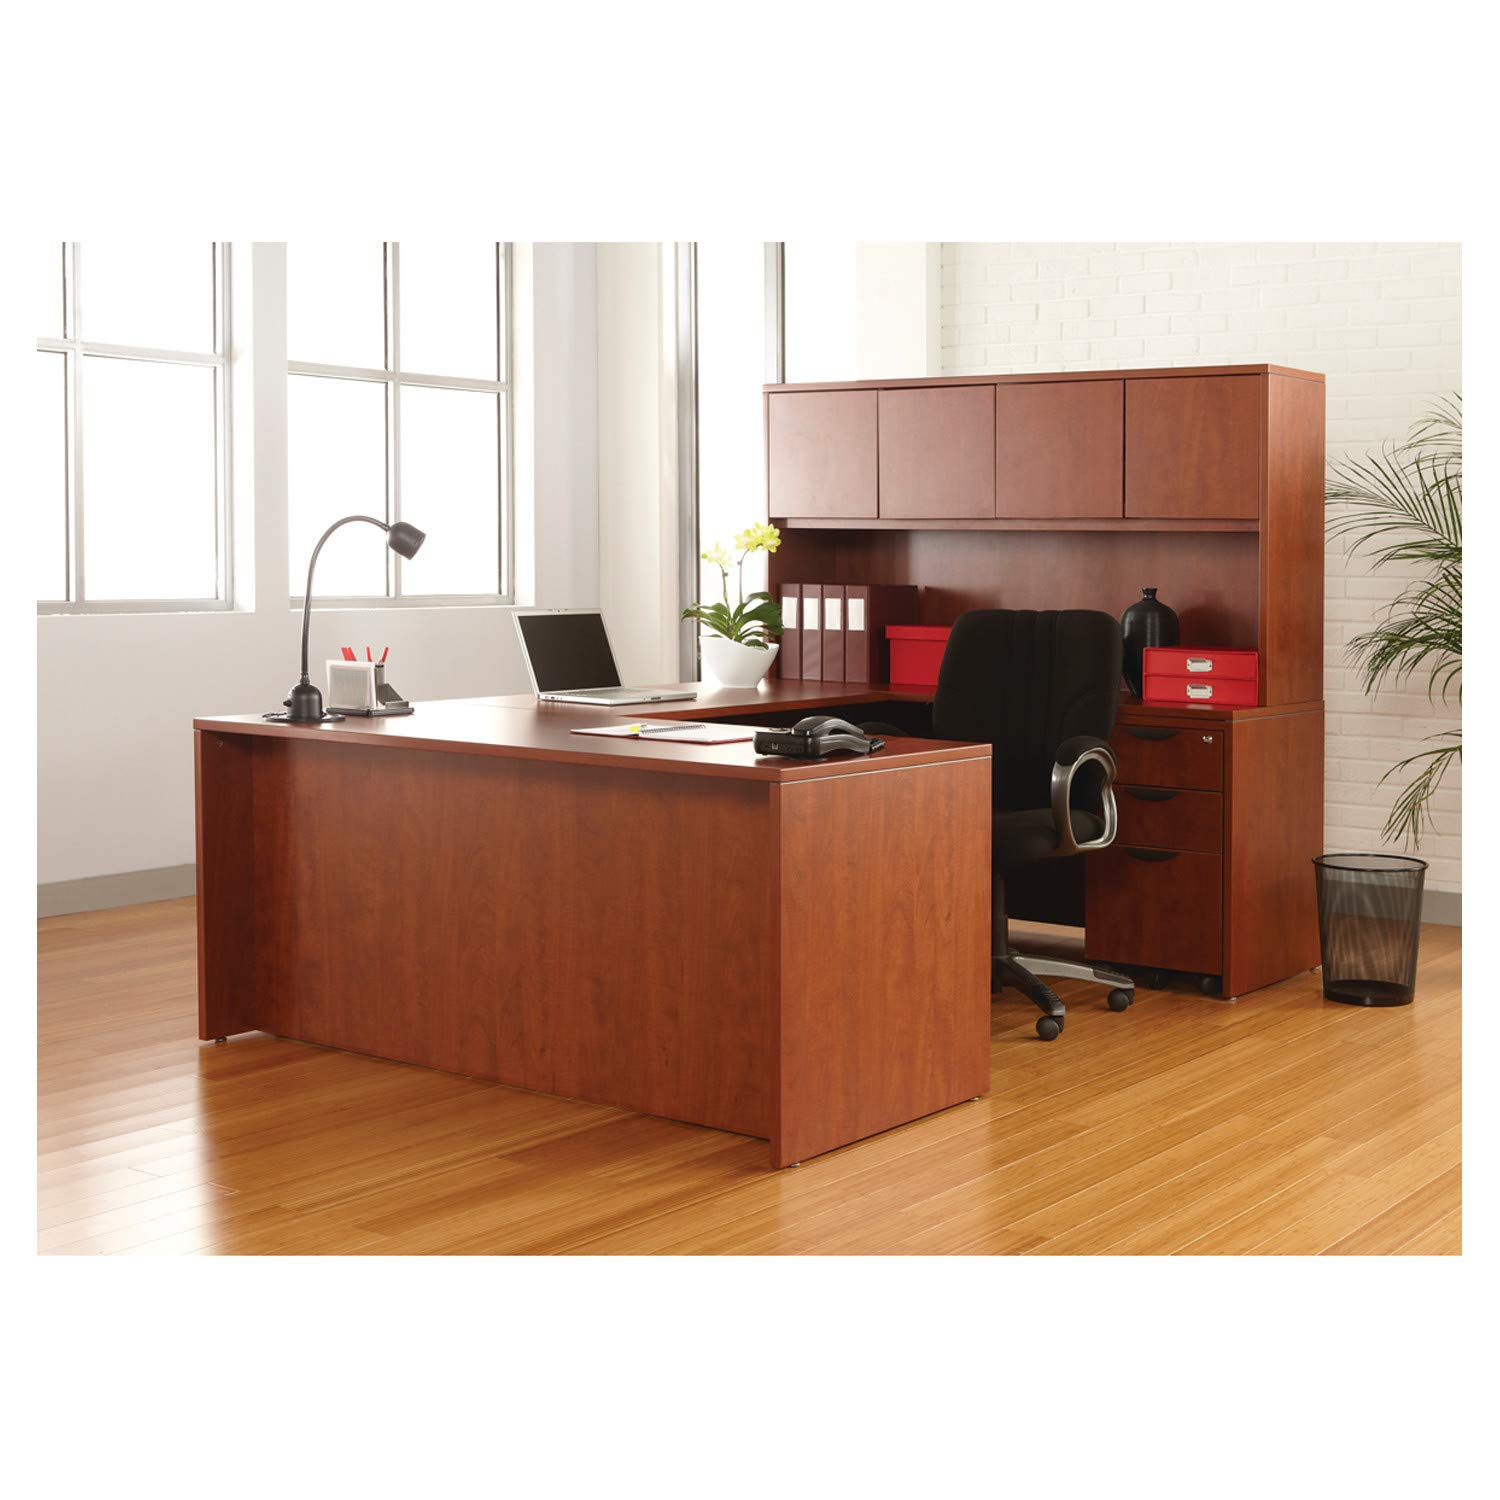 ALEVA217236MC - Best Valencia Series Straight Front Desk Shell